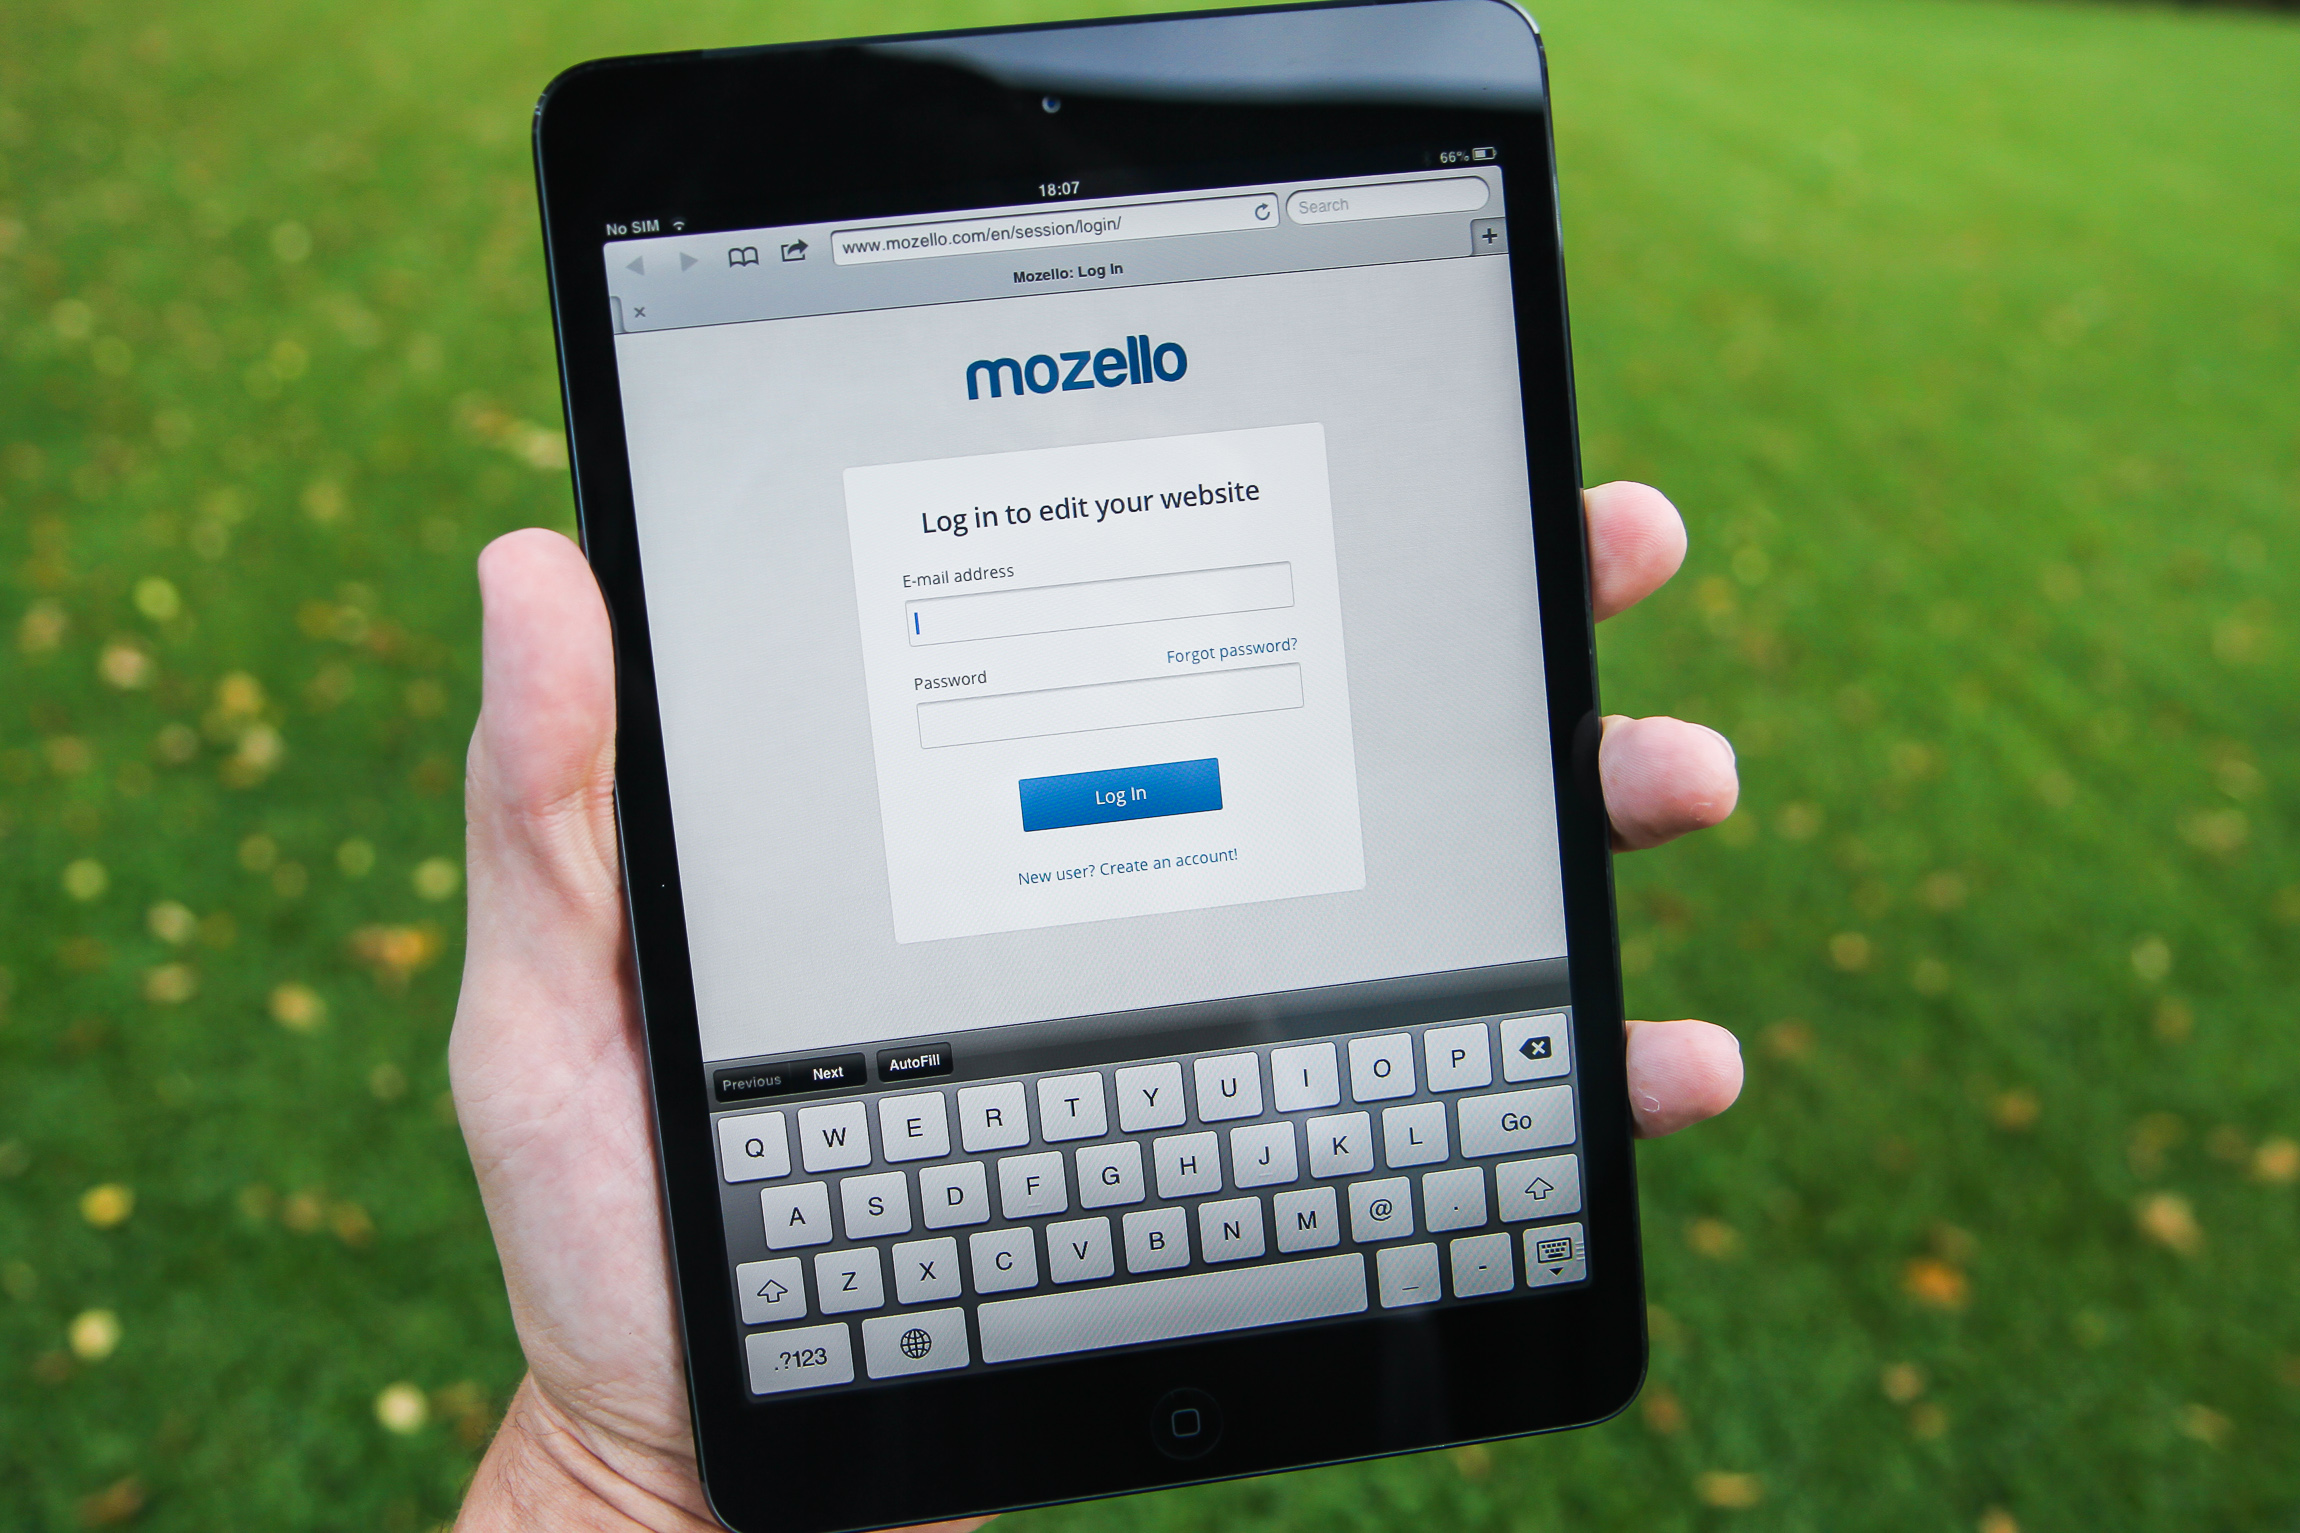 Mozello on iPad